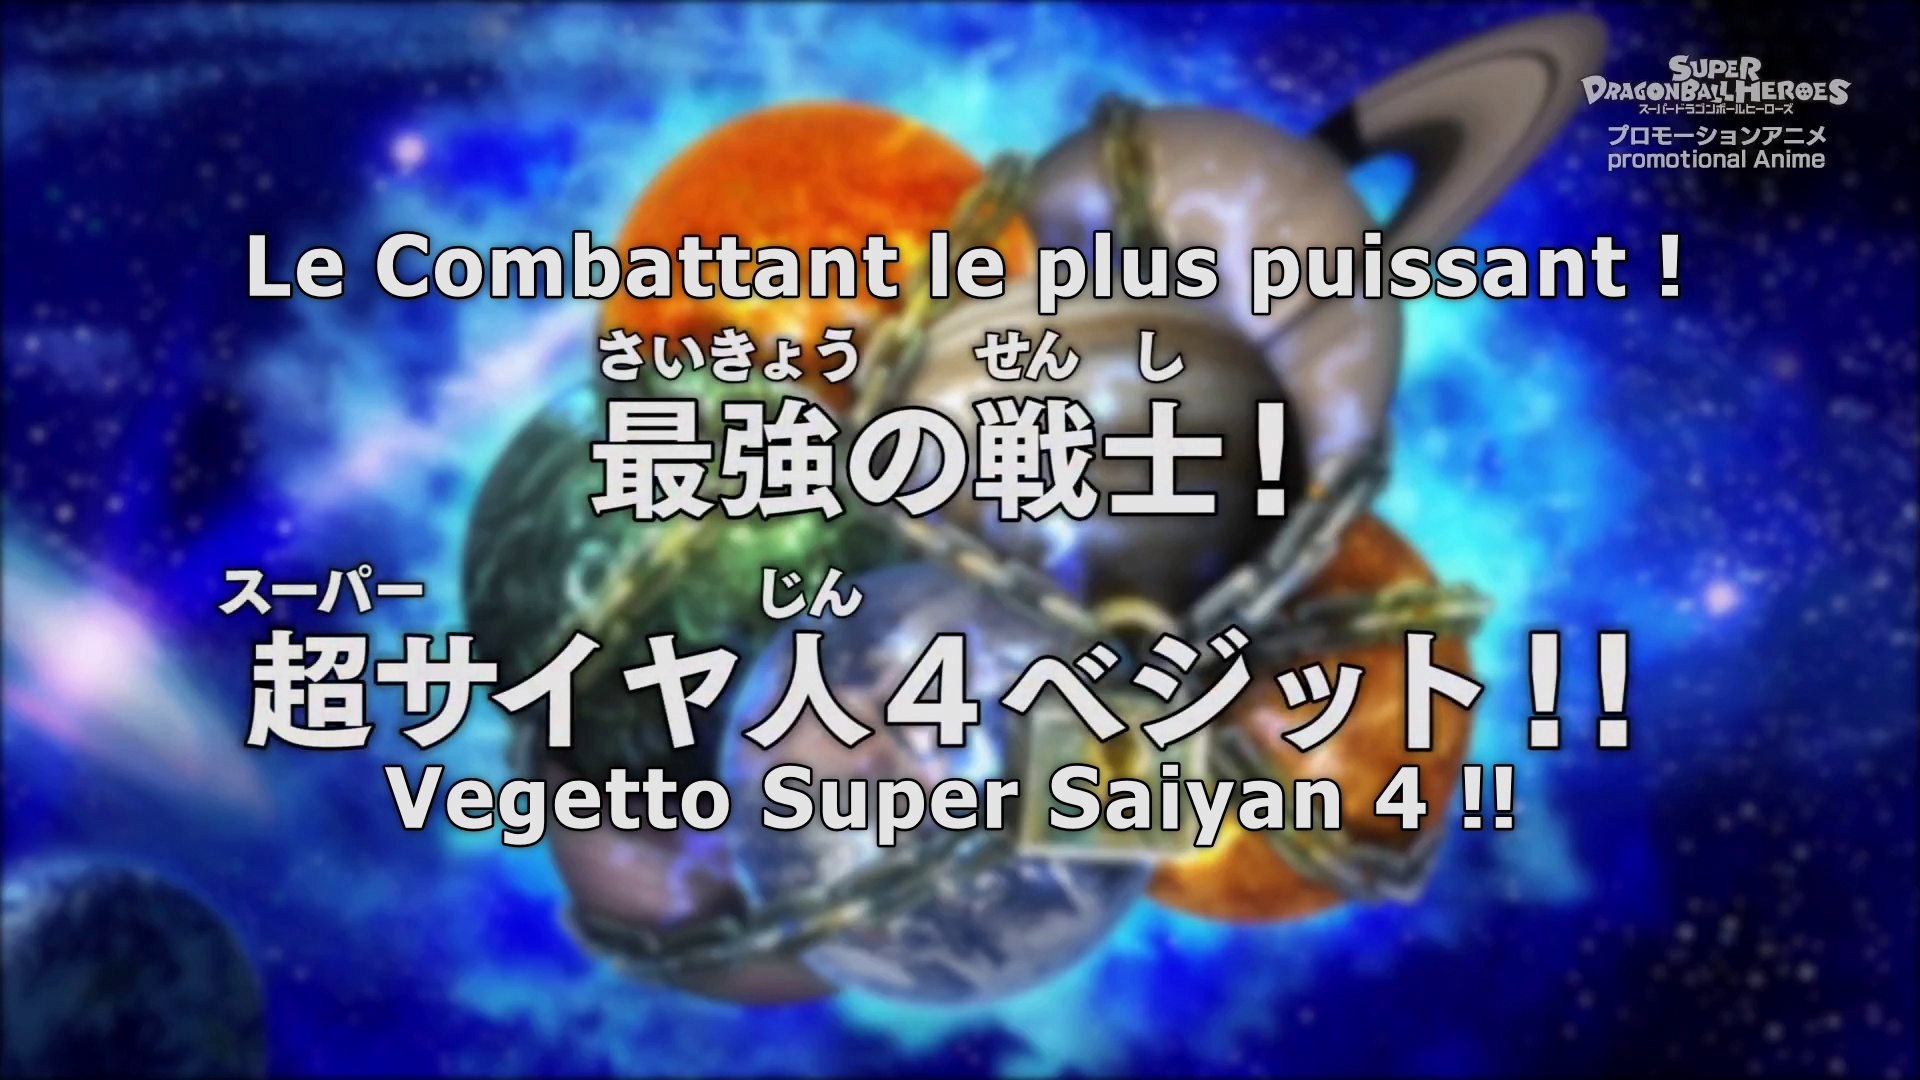 Fansub - Super Dragon Ball Heroes Episode 5